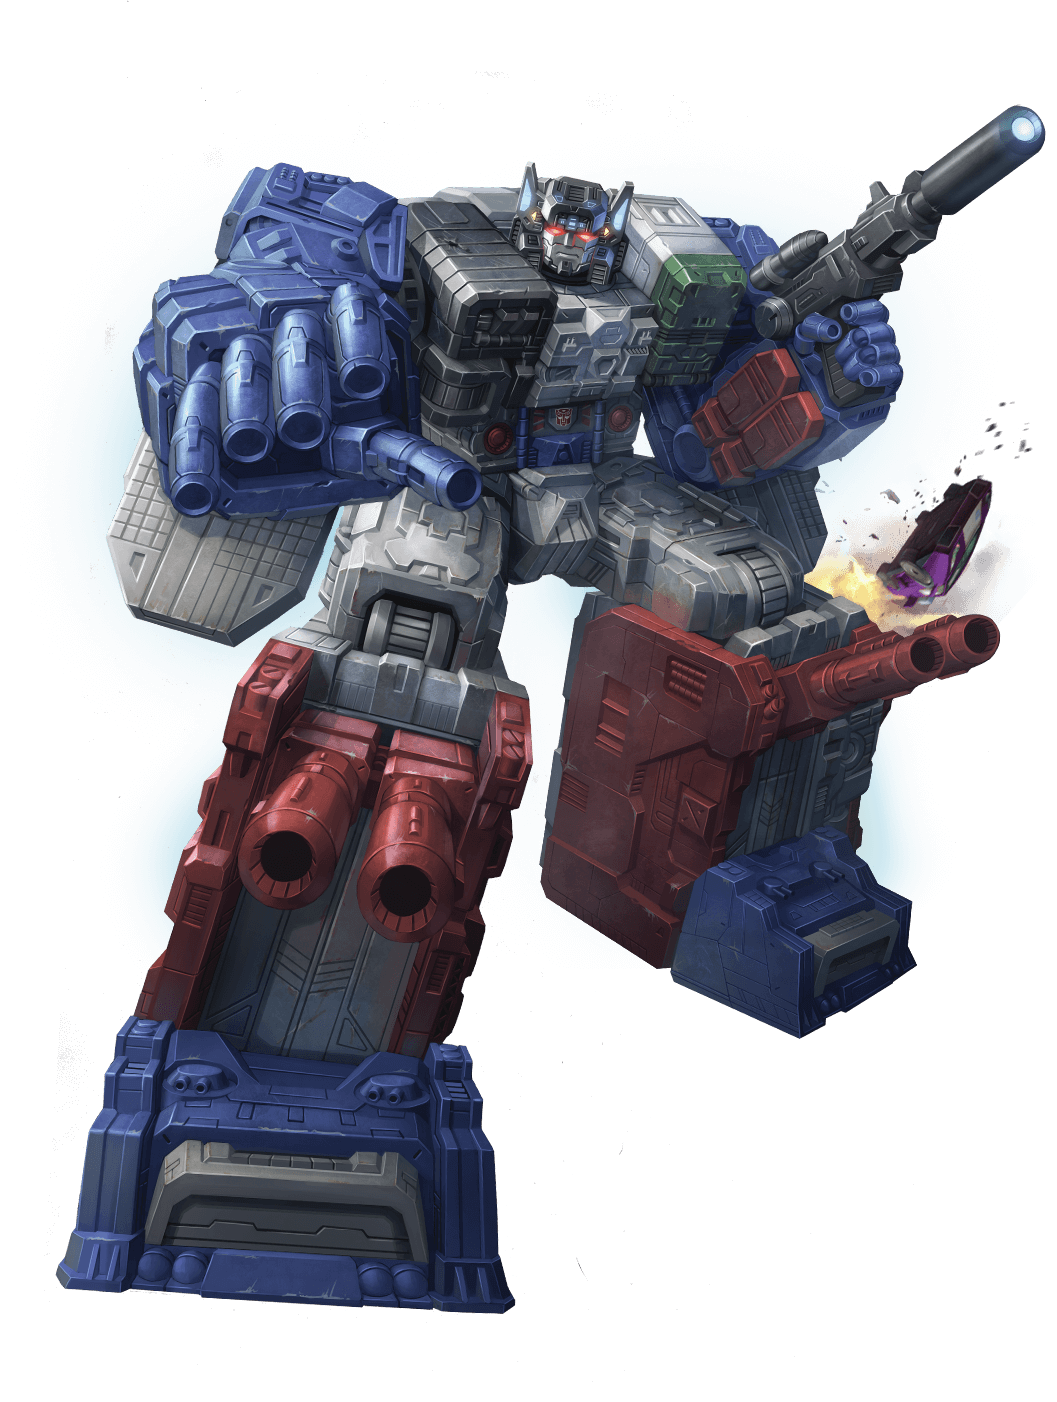 Titans Return FortressMaximus Bio